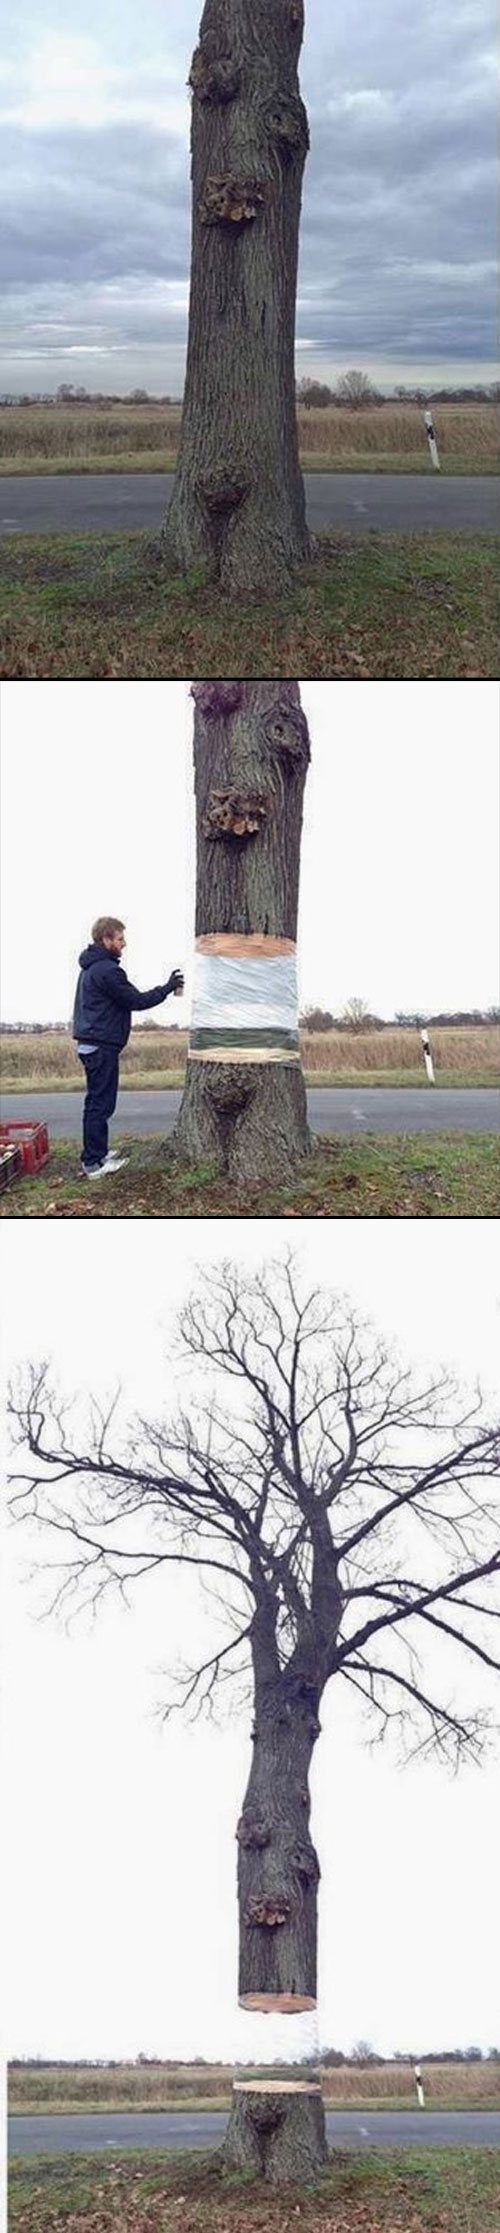 Someone painted a section of this tree to make it look like it is missing.